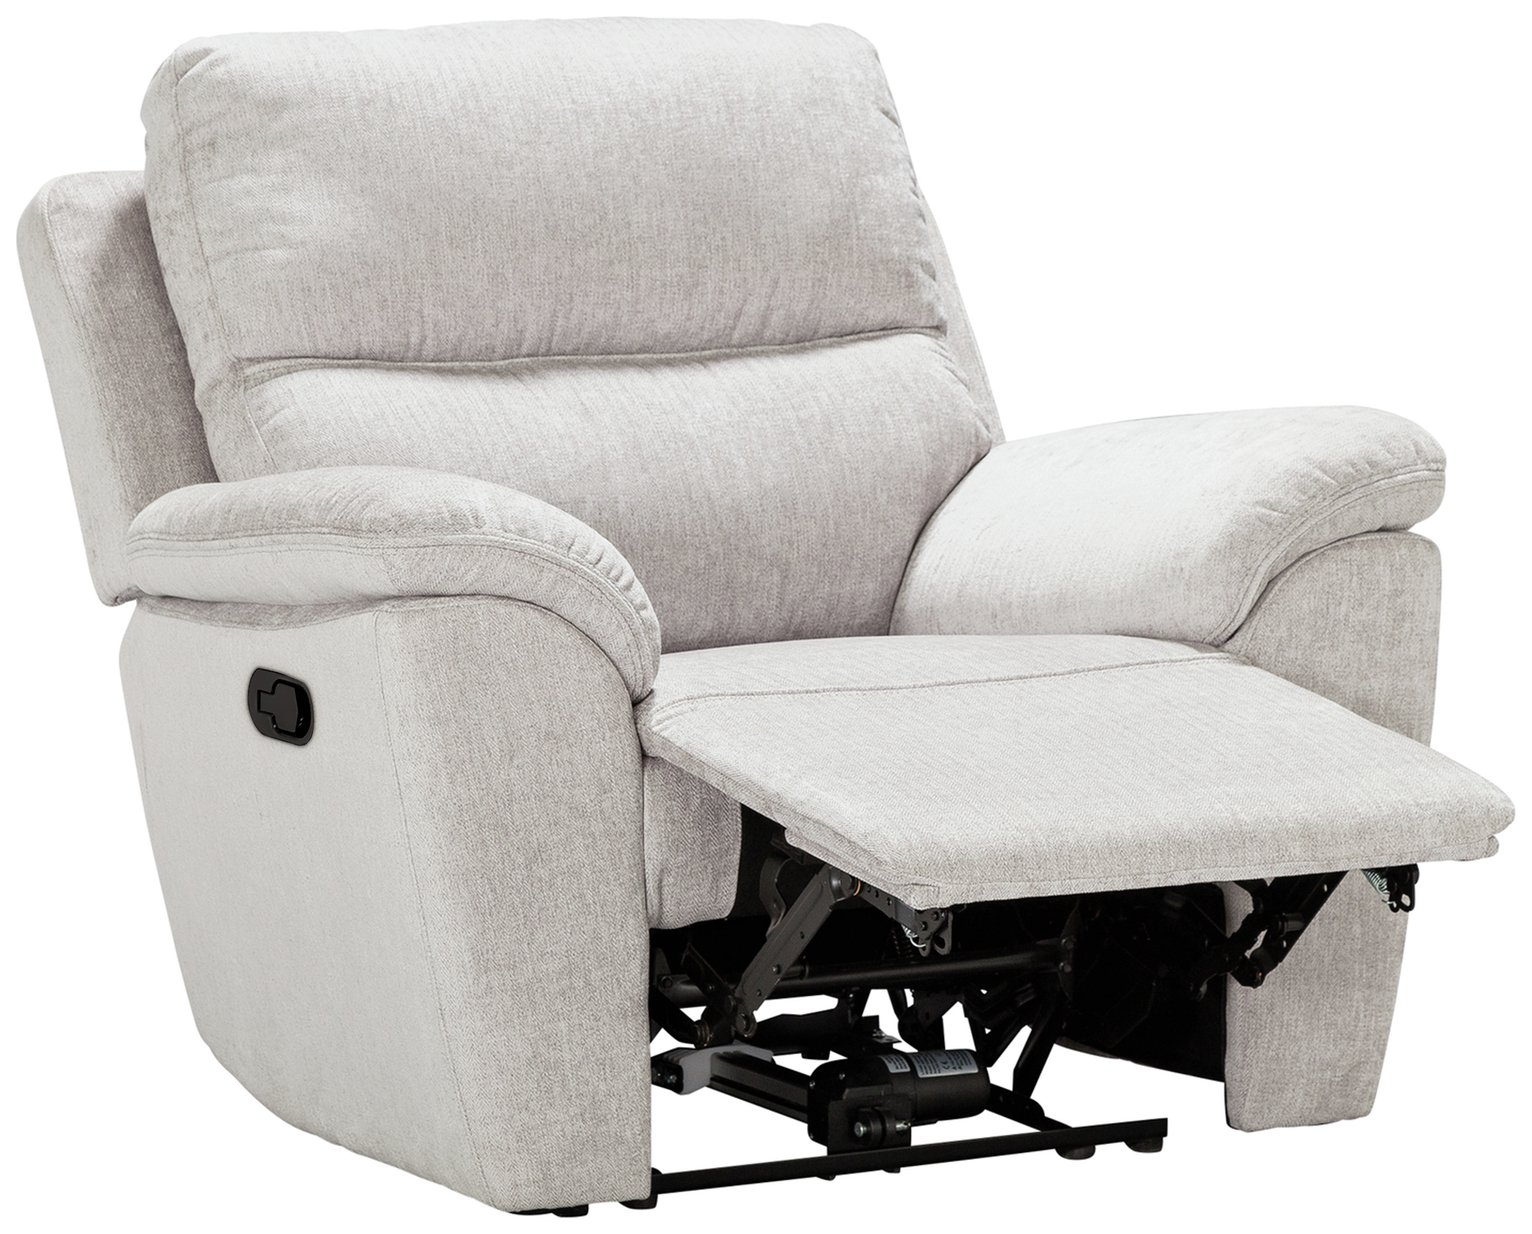 Argos Home Sandy Fabric Manual Recliner Chair - Silver